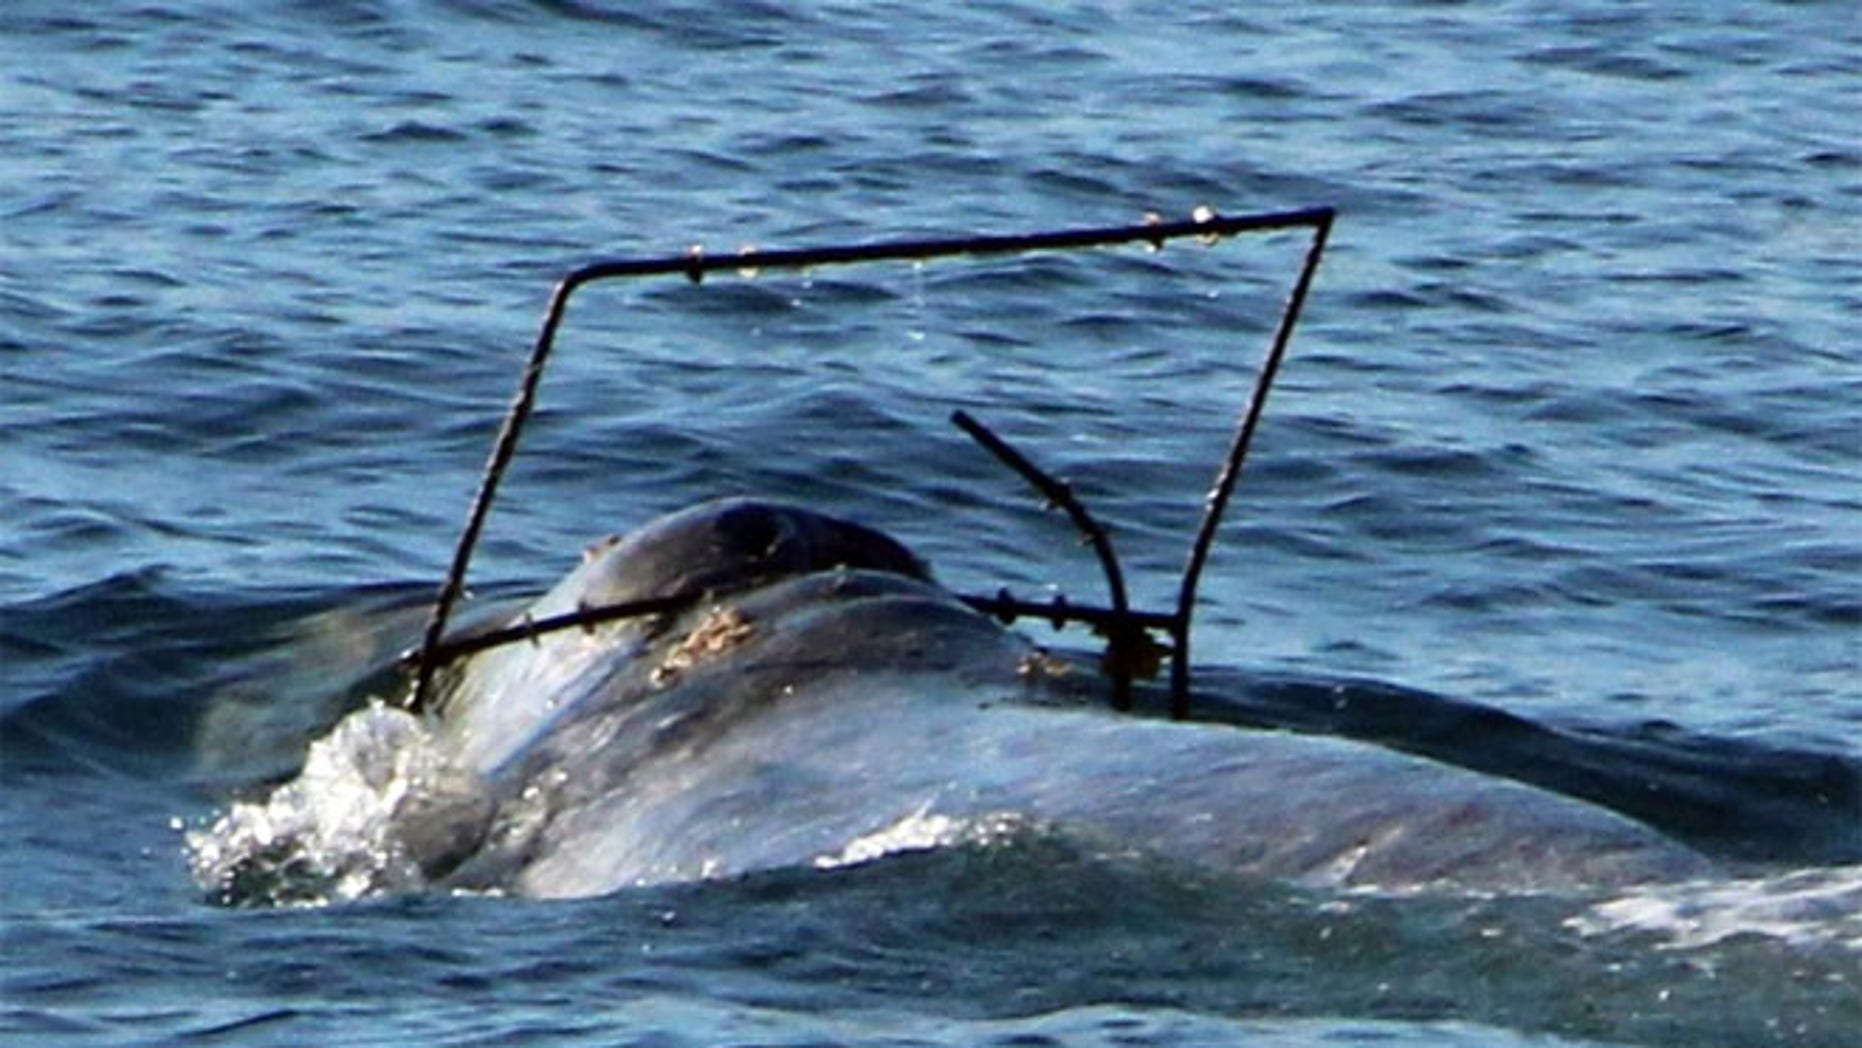 In this photo provided by Capt. Dave's Dolphin and Whale Safari, a gray whale is caught in what appears to be some kind of frame off the coast at Dana Point, Calif.